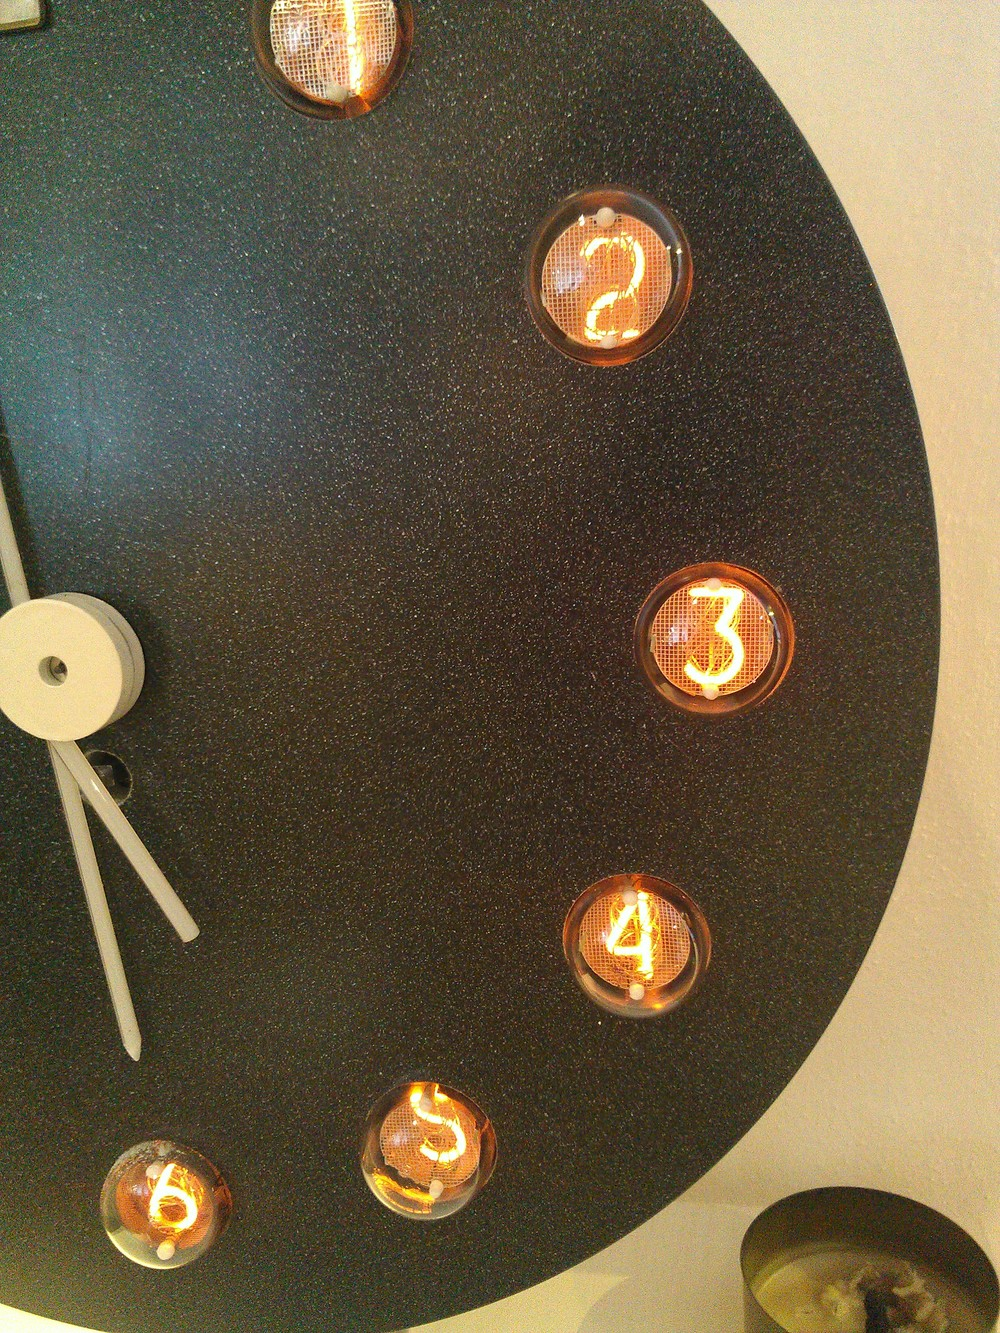 A clock, with the numbers made from bent light filaments